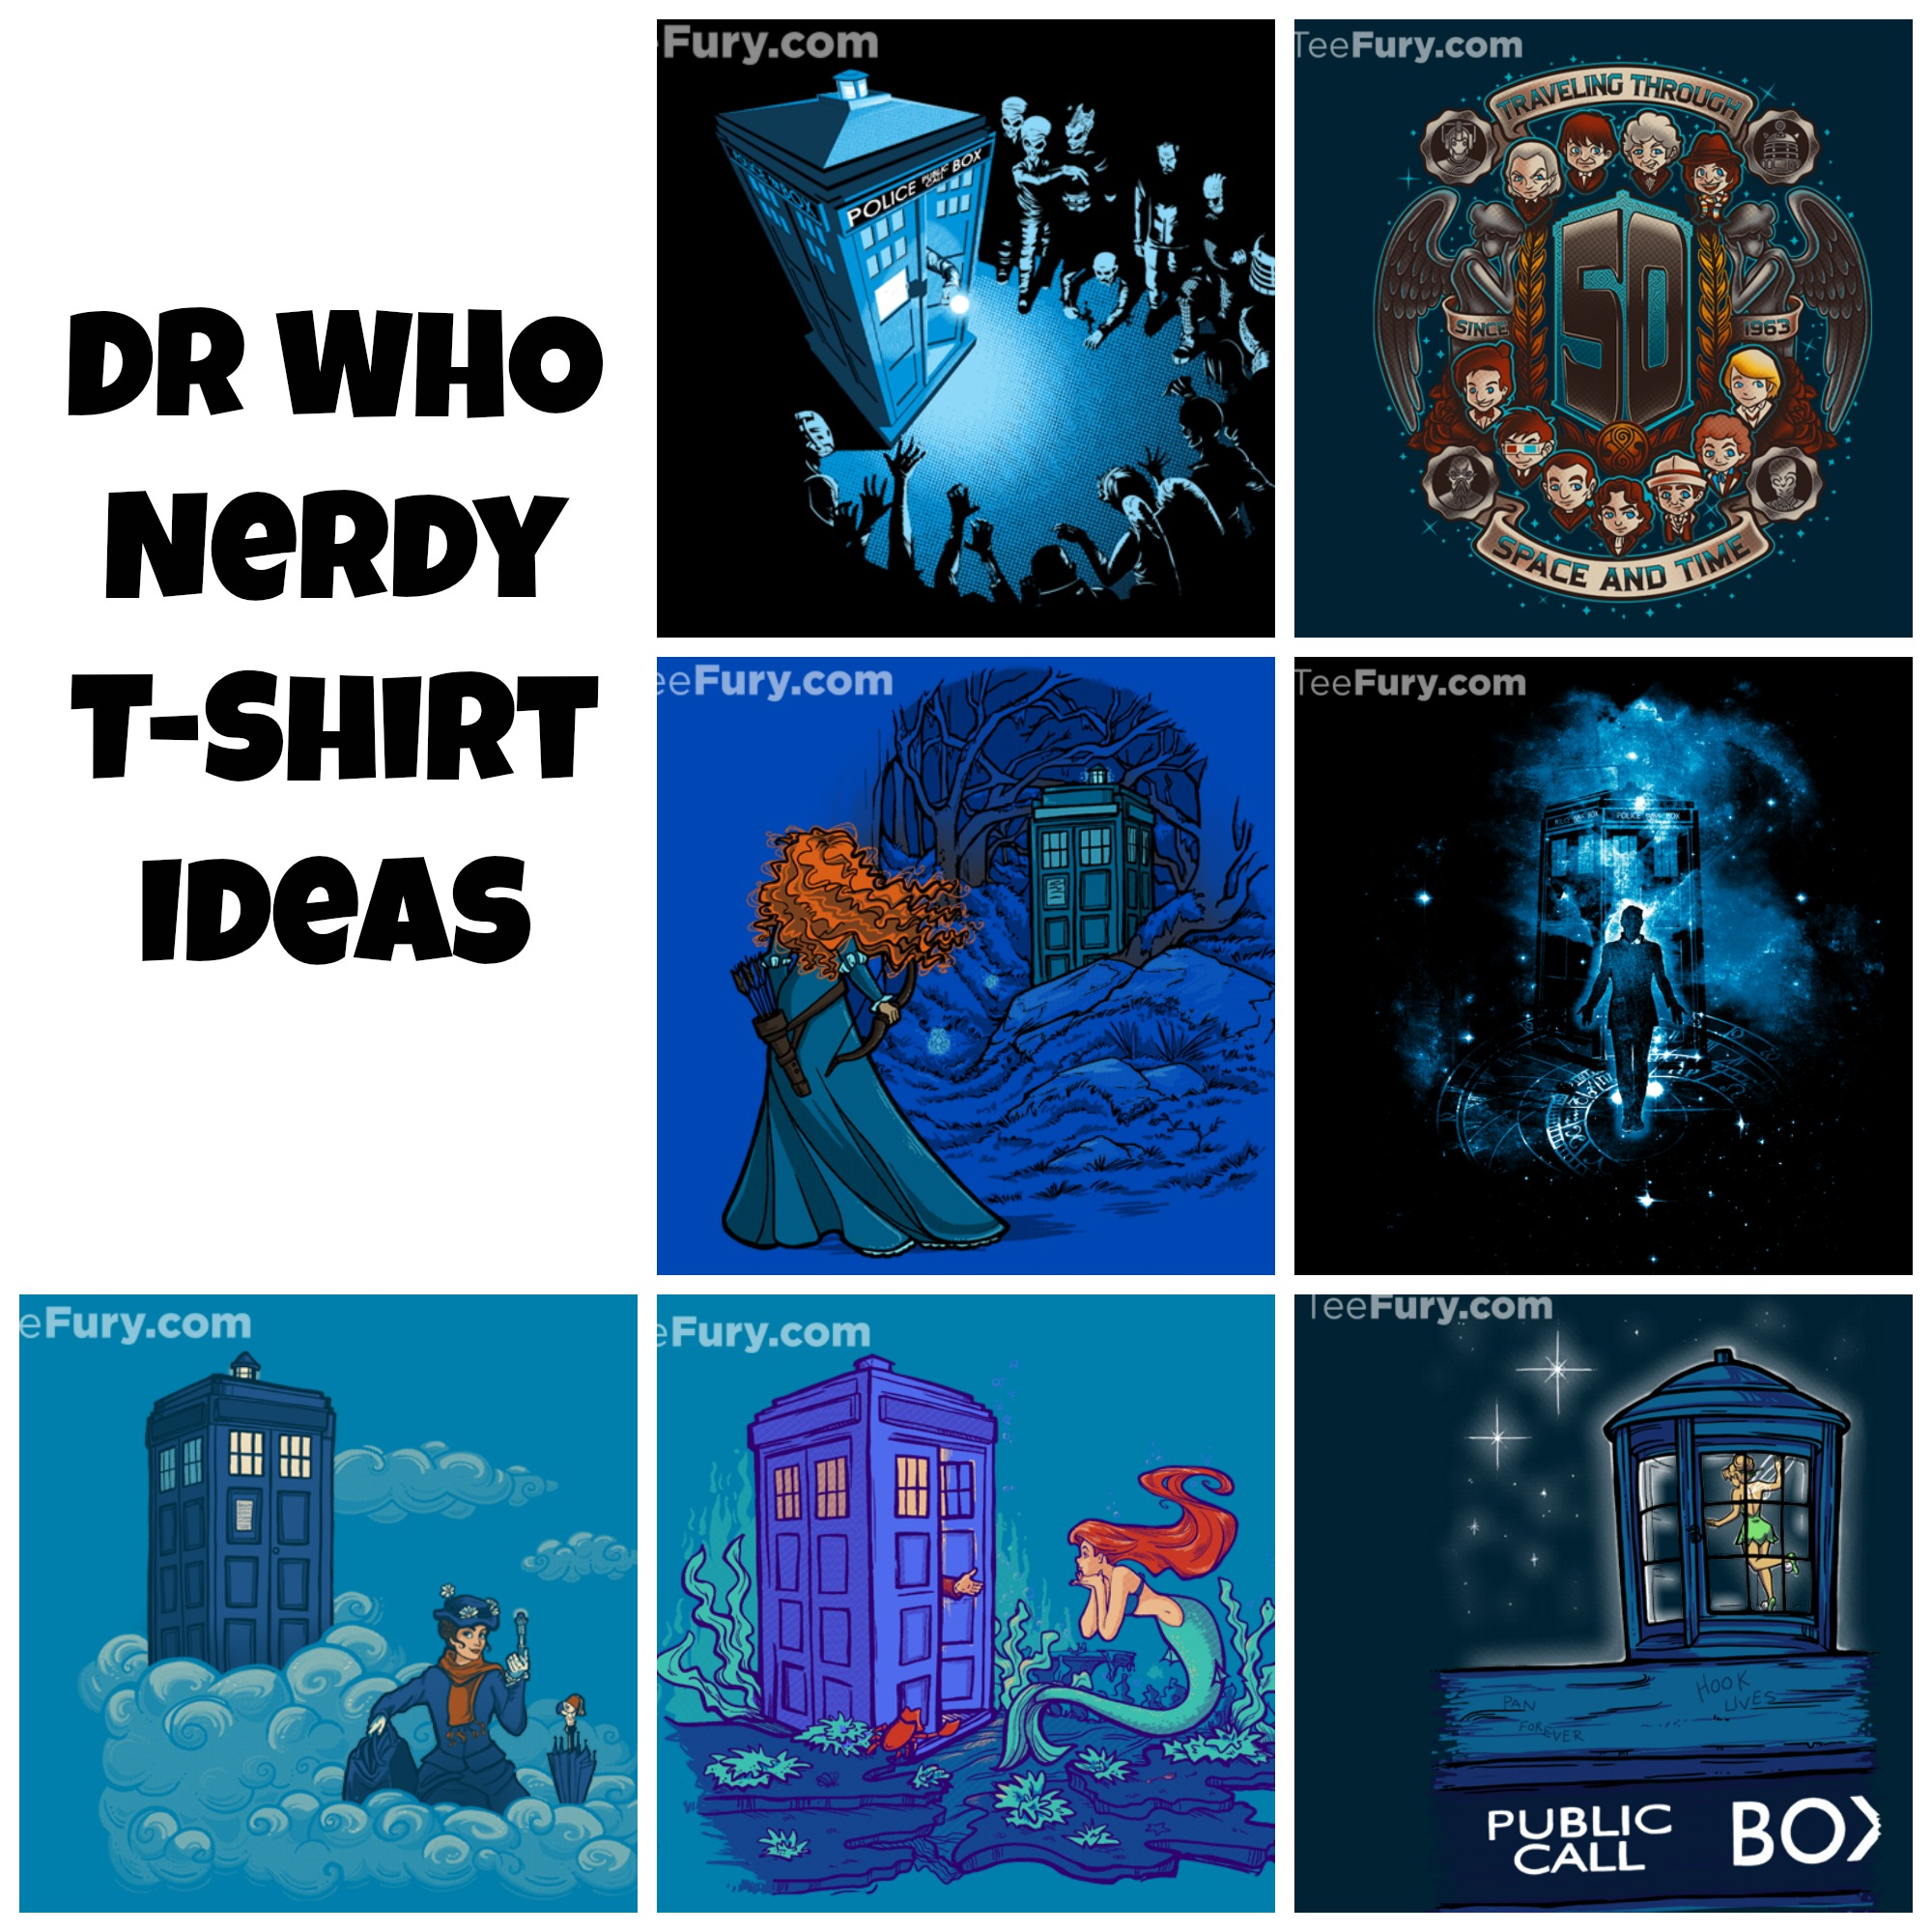 Wedding Gift Ideas For Nerds : Nerdy T-Shirt Ideas - Dr. Who Edition - The Love Nerds